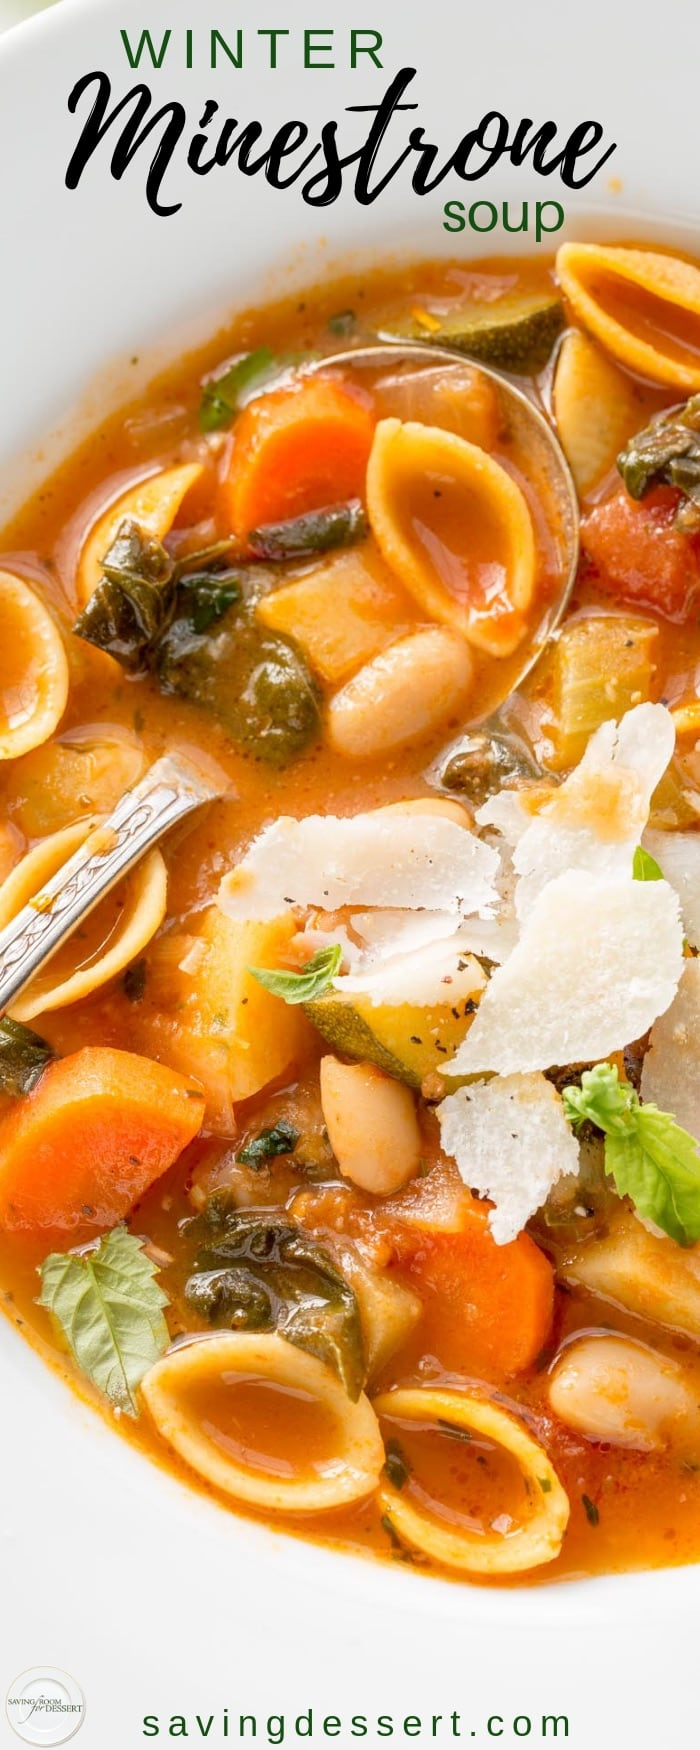 Winter Minestrone Soup ~ hearty, healthy and loaded with fresh seasonal vegetables. Featuring Chickapea Pasta, Swiss Chard, onion, carrots, celery, zucchini, potato and cannellini beans. Freezes beautifully! #savingroomfordessert #soup #minestrone #wintersoup #fallsoup #comfortfood #chickapeapasta #healthysoup